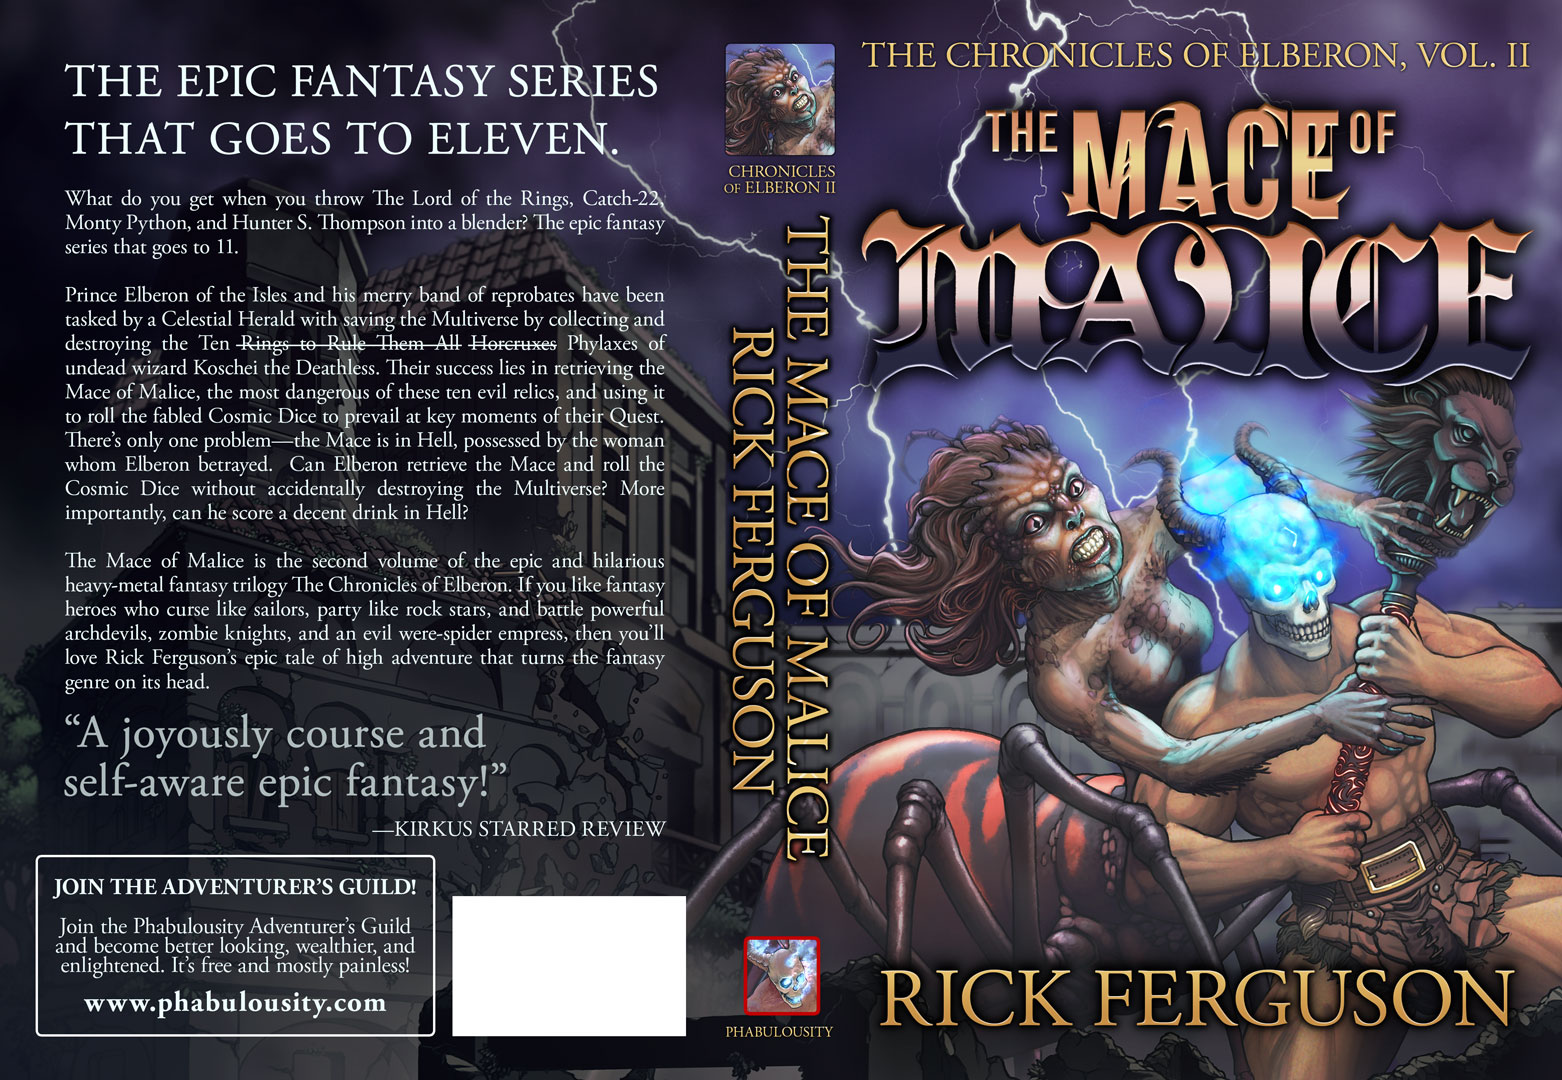 MACE-OF-MALICE-COVER-FULL